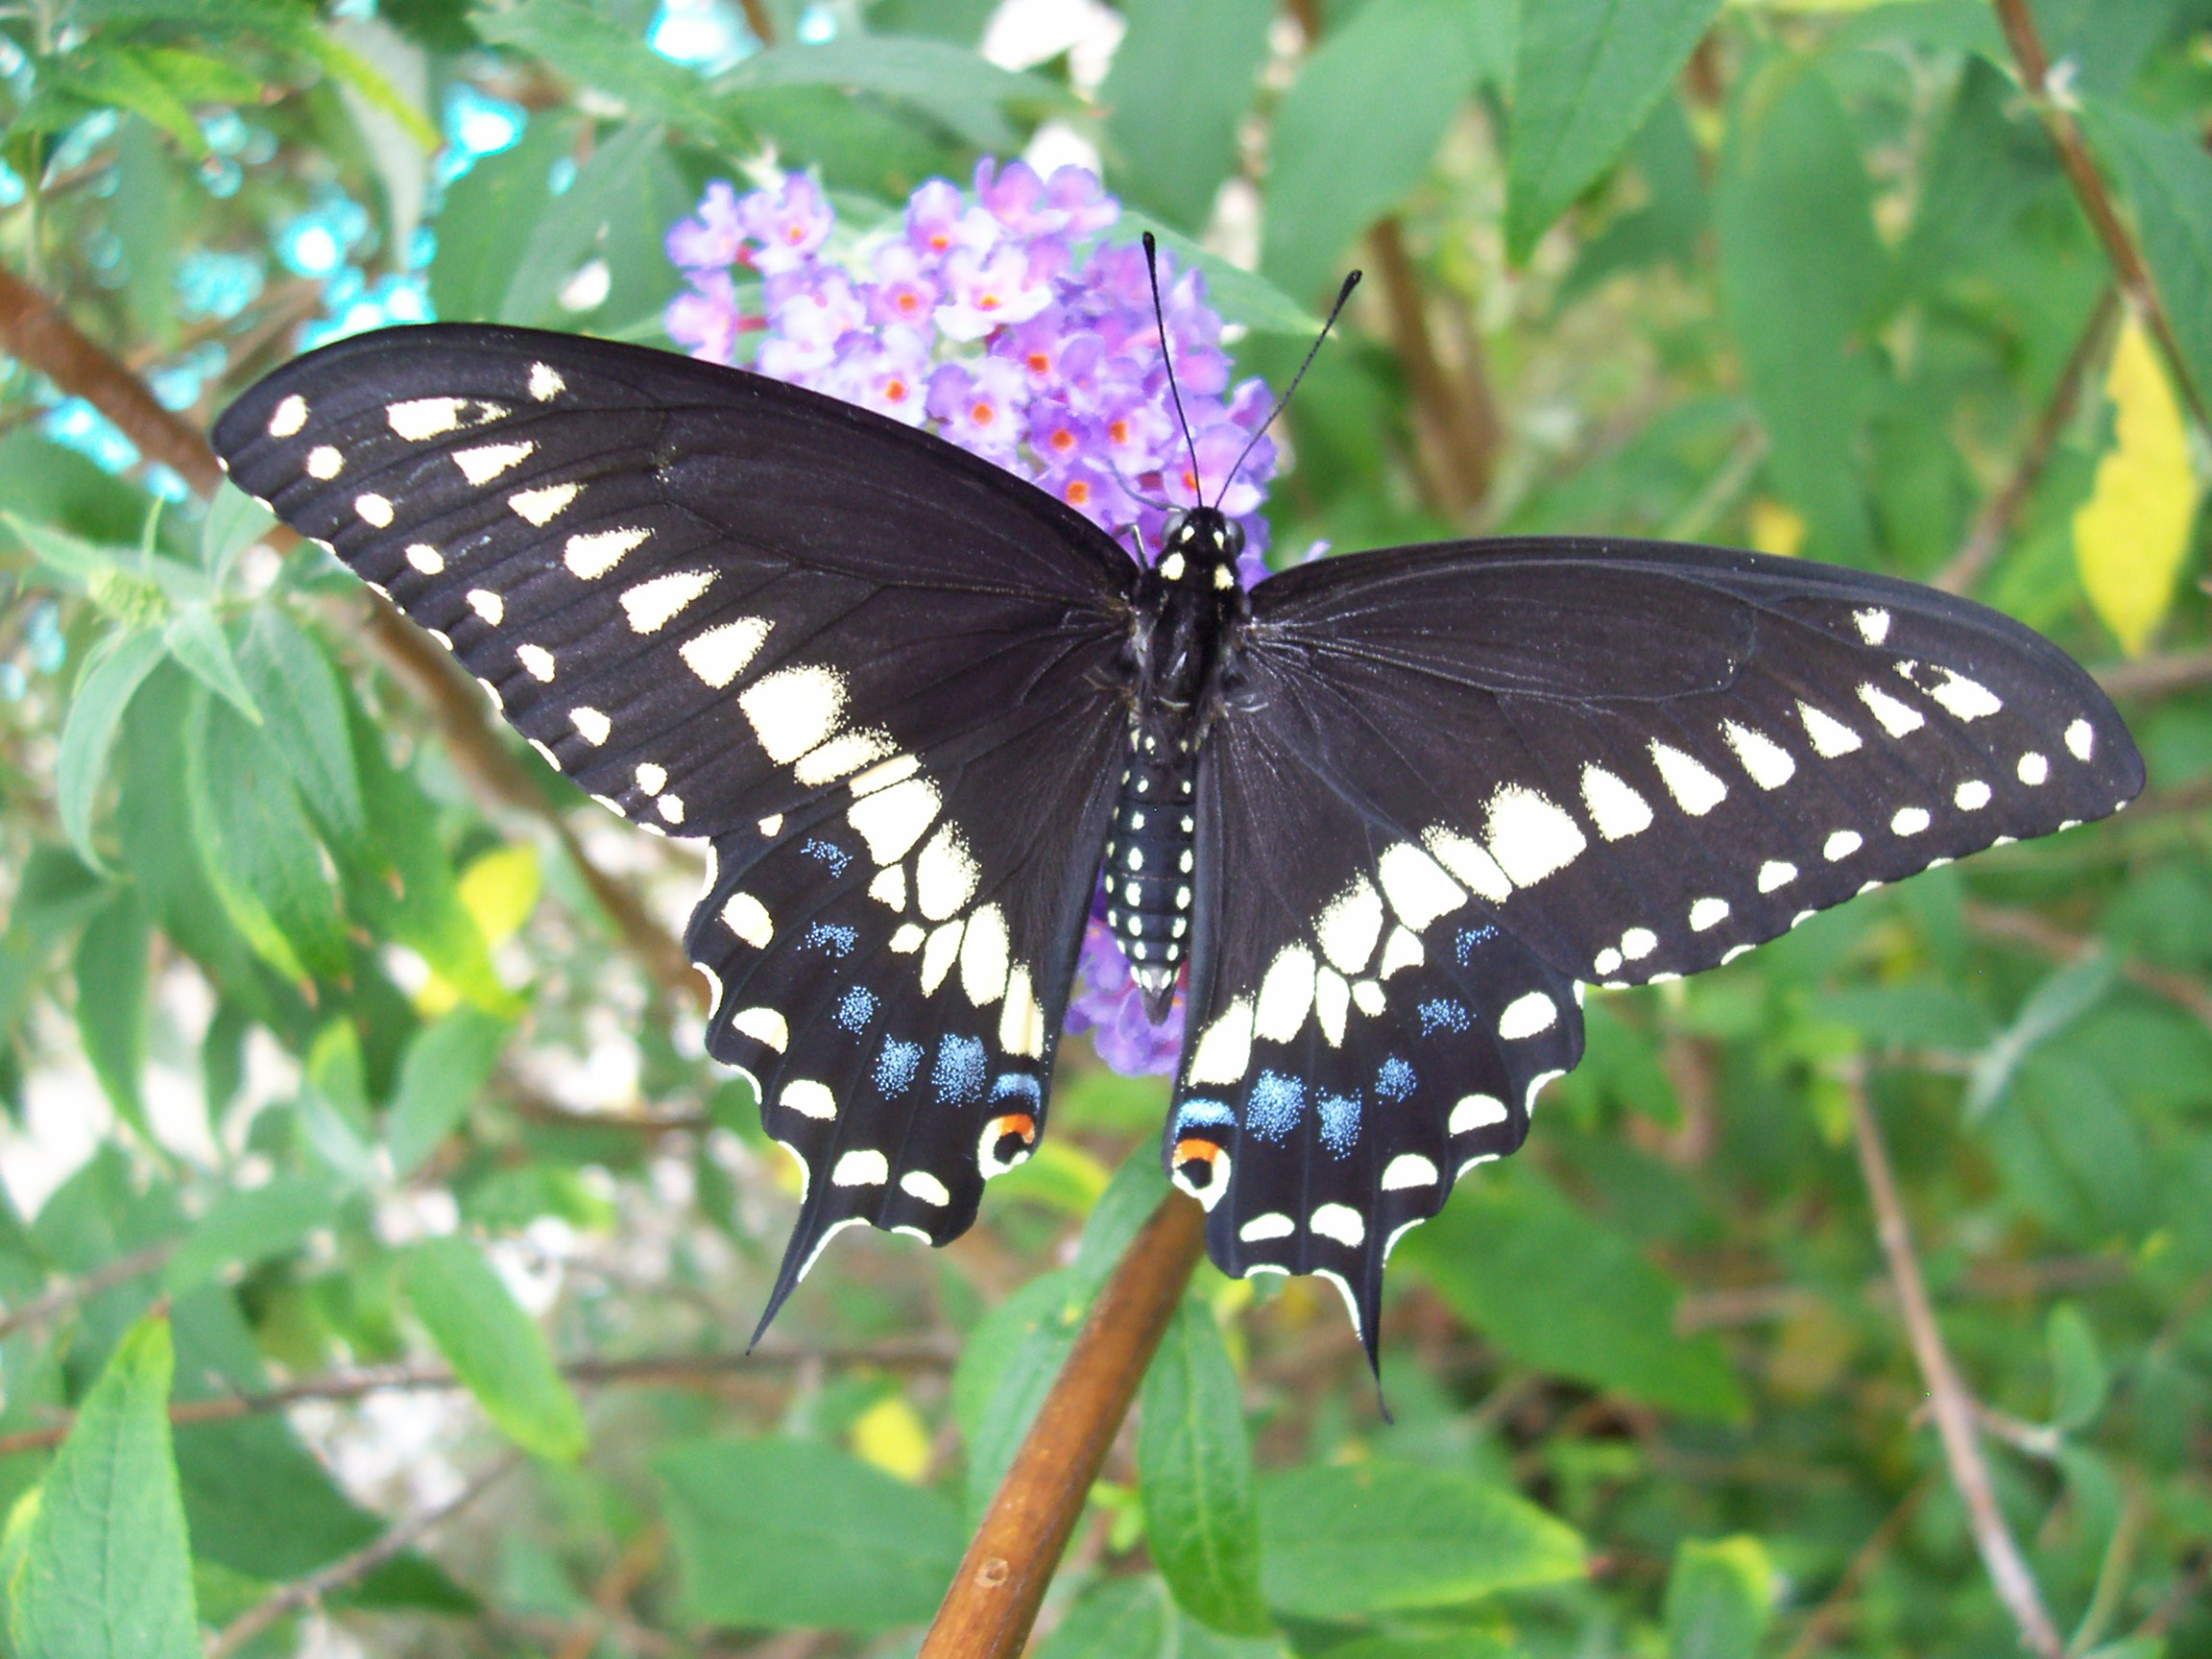 Papilio polyxenes - black swallowtail - black colored butterfly species